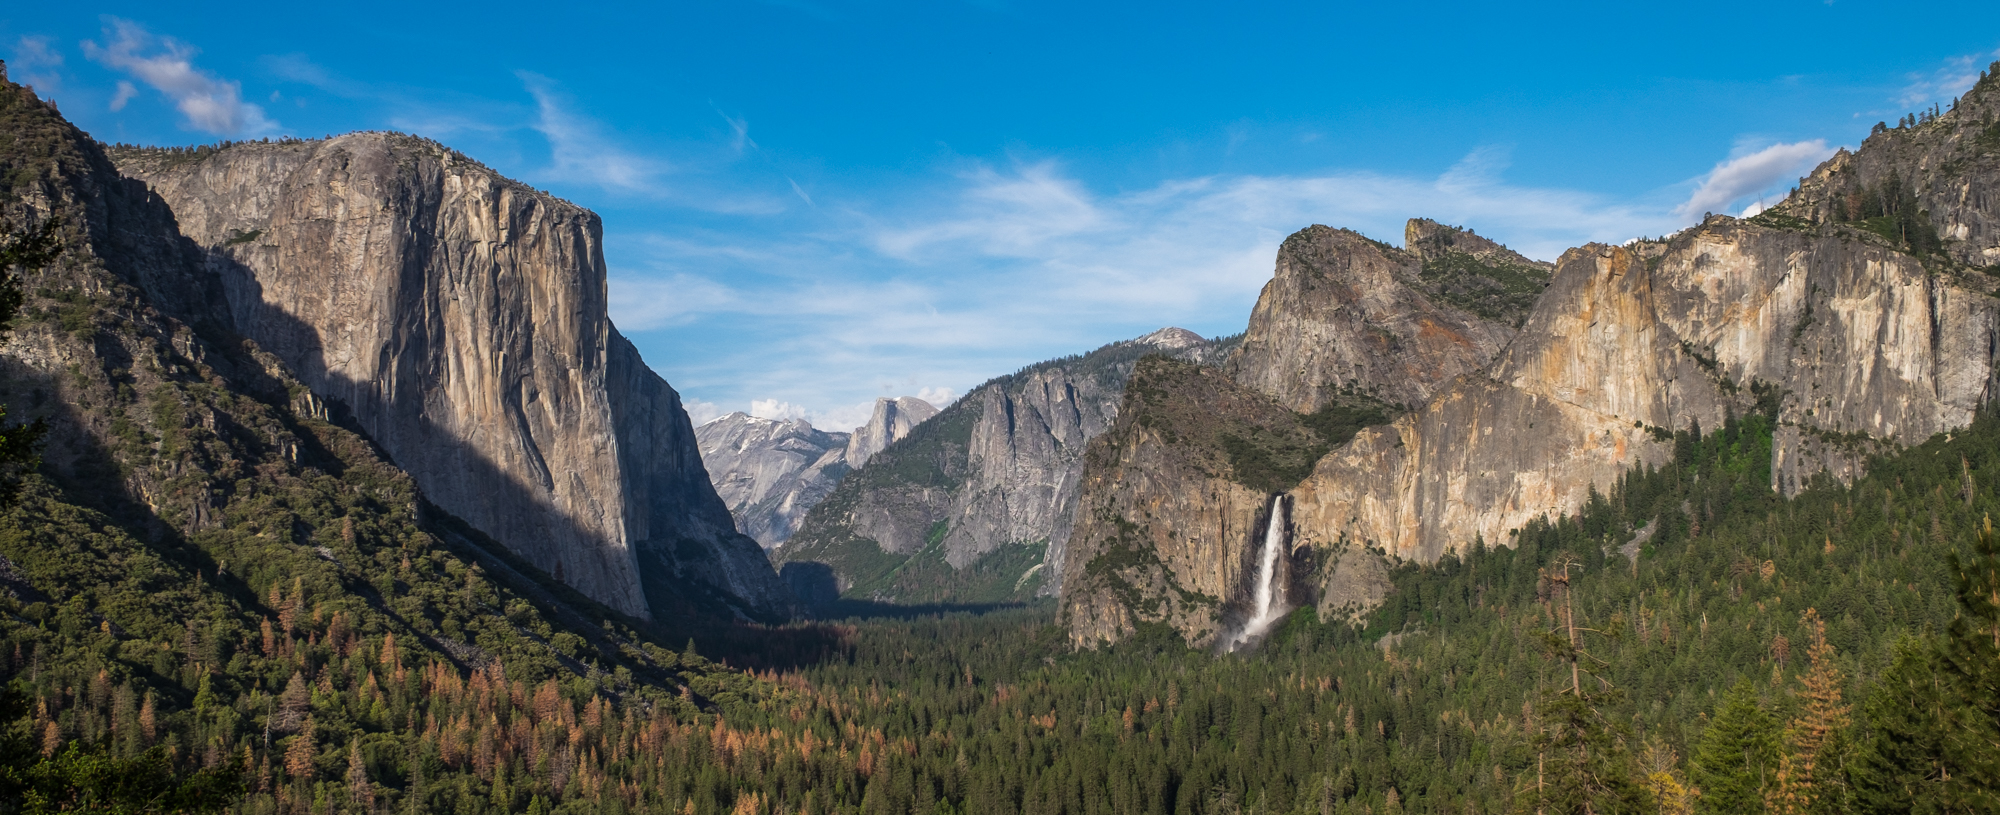 Our first stop was at the iconic Tunnel View lookout. It never disappoints.